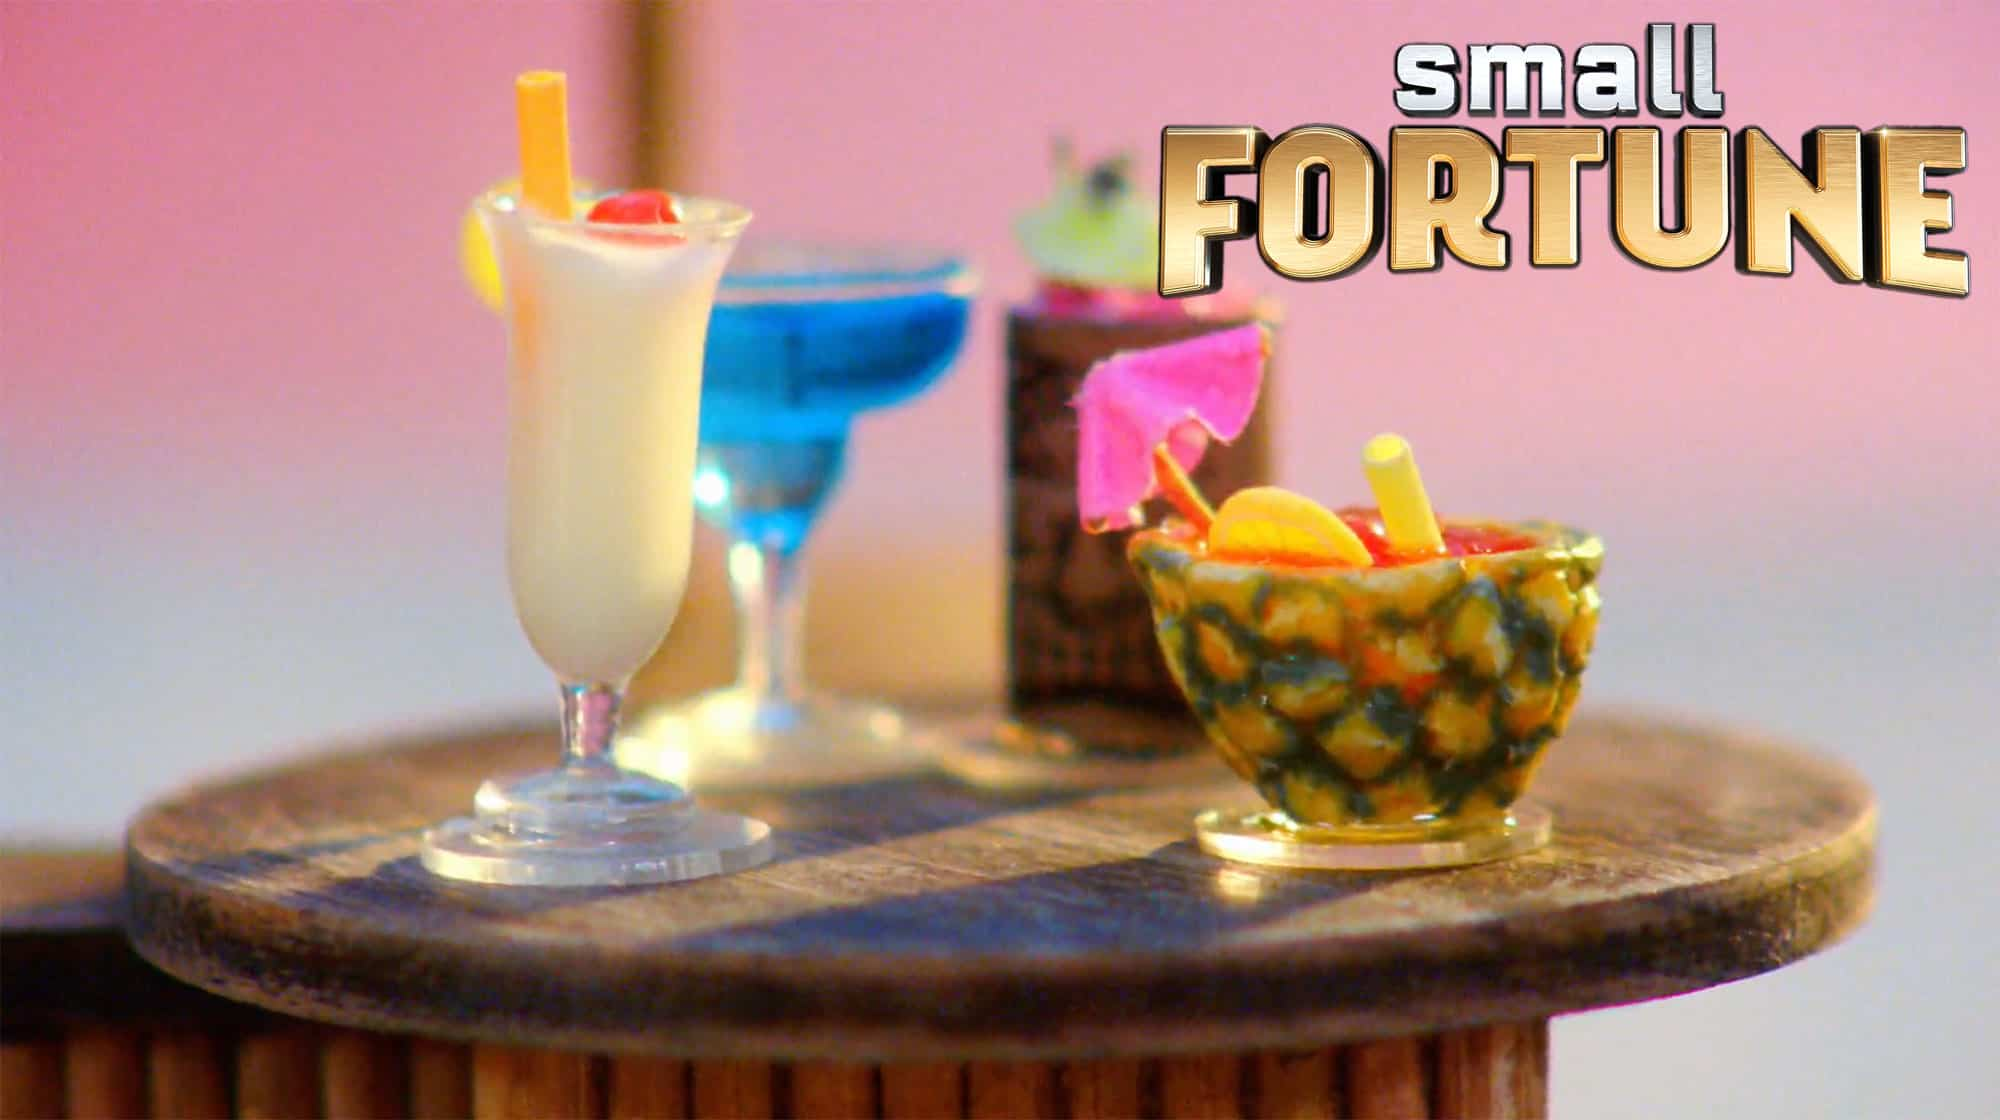 Tiny dollhouse miniature cocktails by Erika Pitera of The Petite Provisions Co. featured on NBC's Small Fortune game show competition